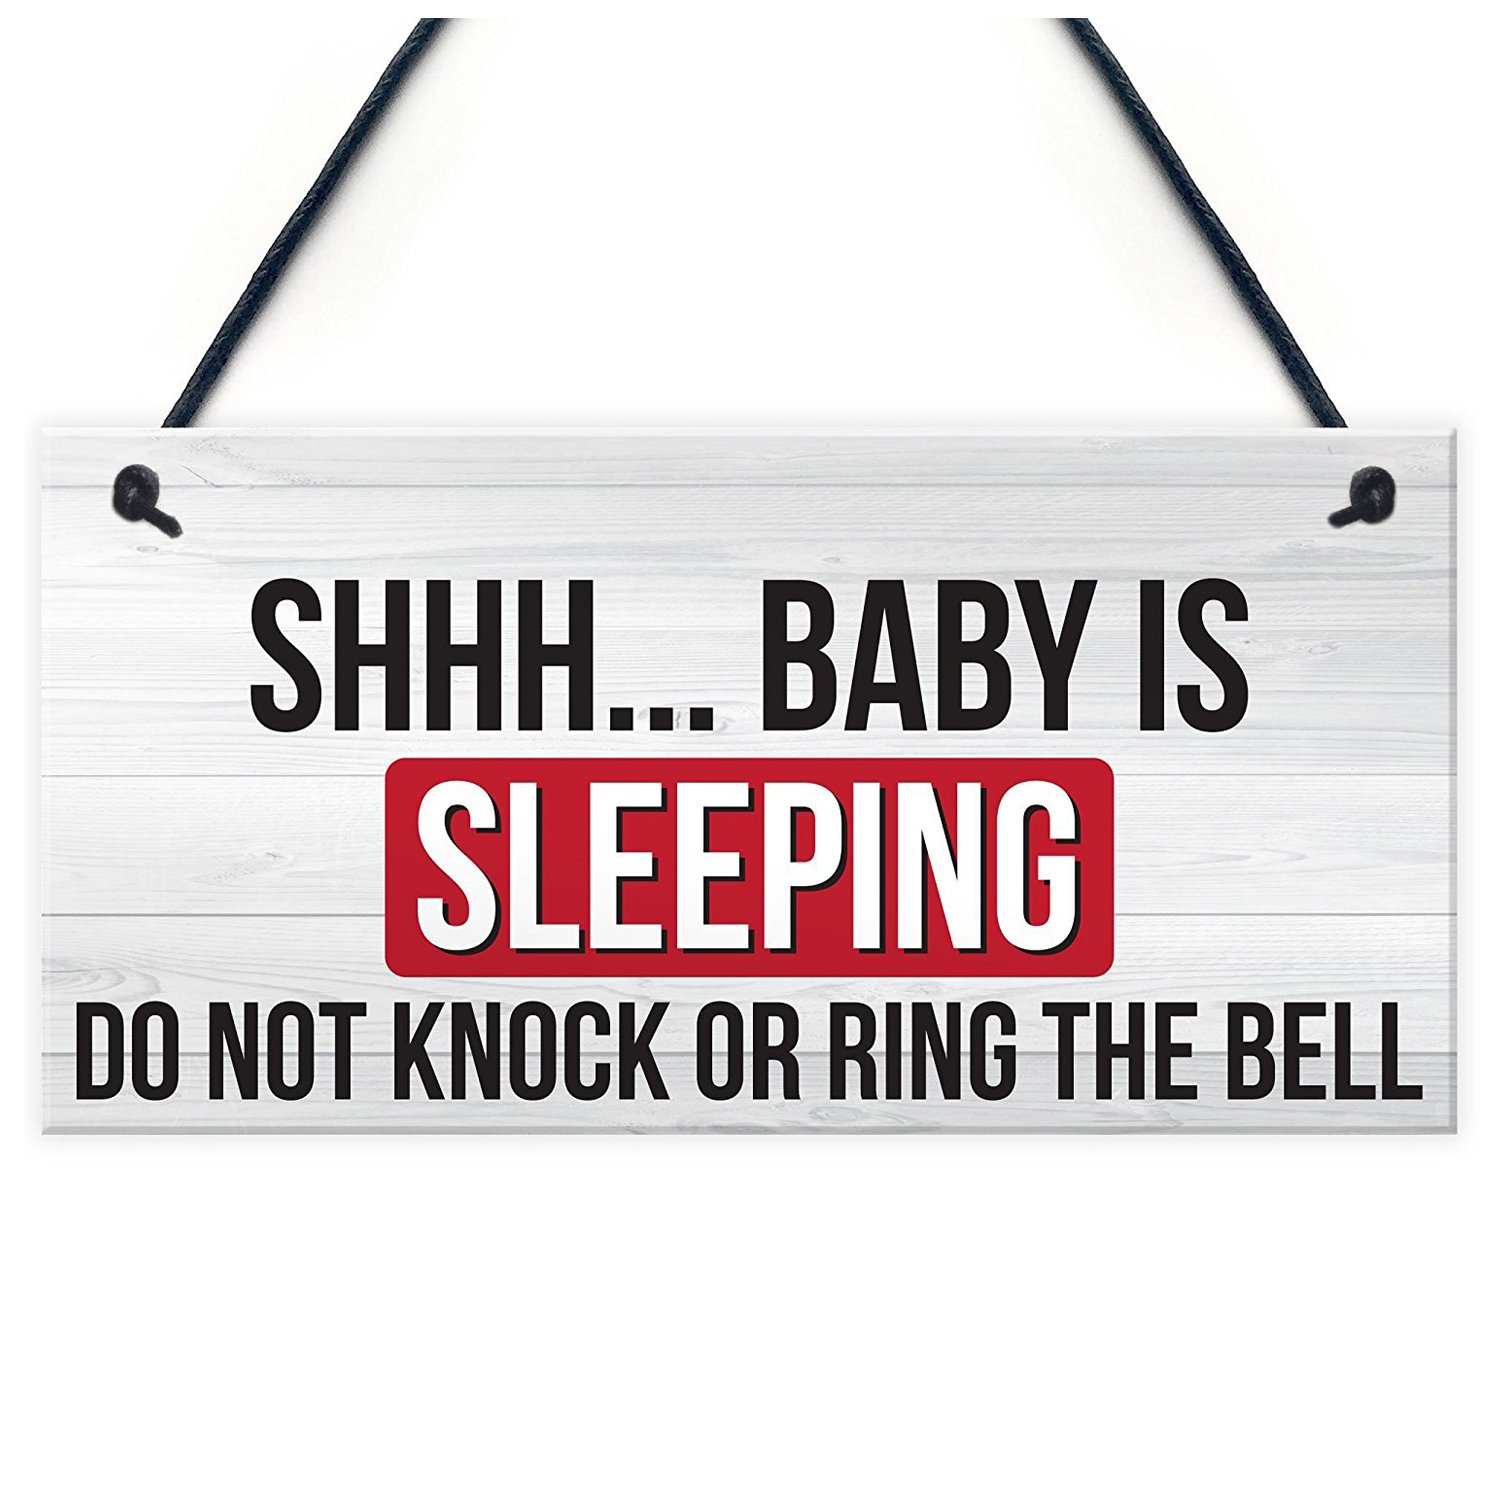 SODIAL Shh.. Baby Is Sleeping Do Not Disturb Nursery Hanging Plaque Baby Door Cot Sign